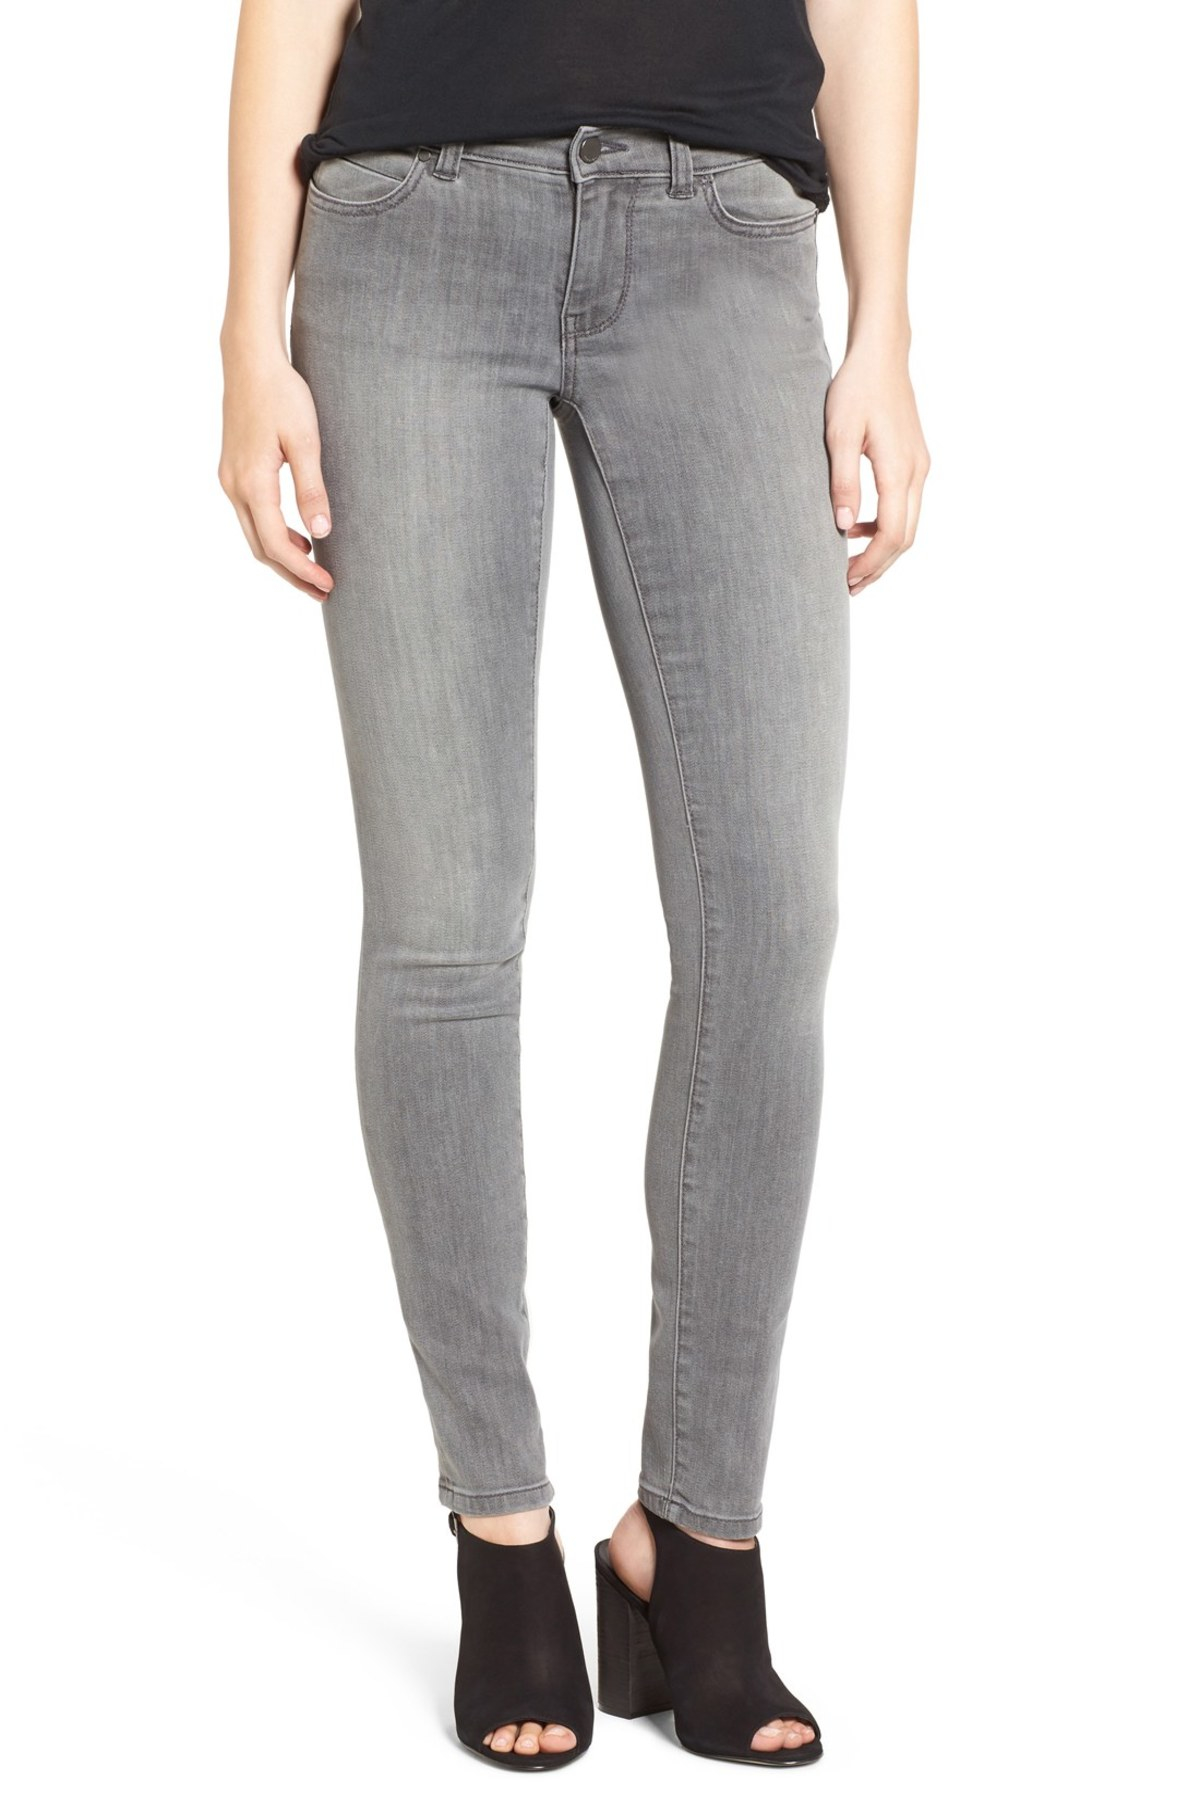 Find color skinny jeans at ShopStyle. Shop the latest collection of color skinny jeans from the most popular stores - all in one place.